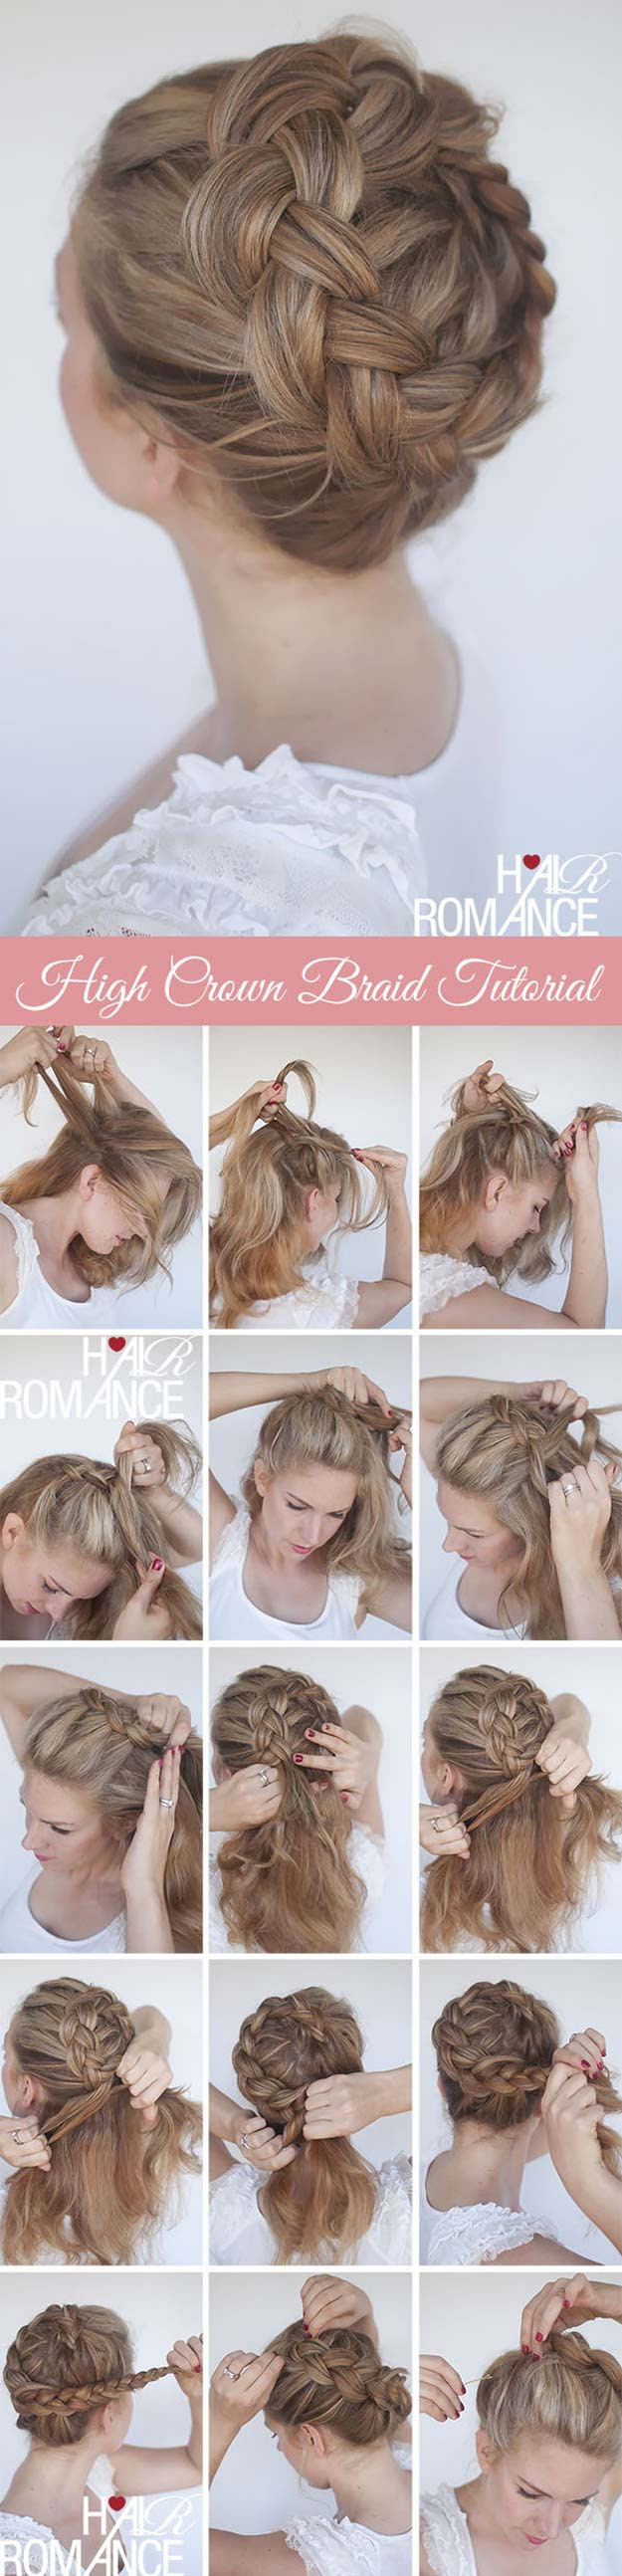 40 of the Best Cute Hair Braiding Tutorials - DIY Projects for Teens